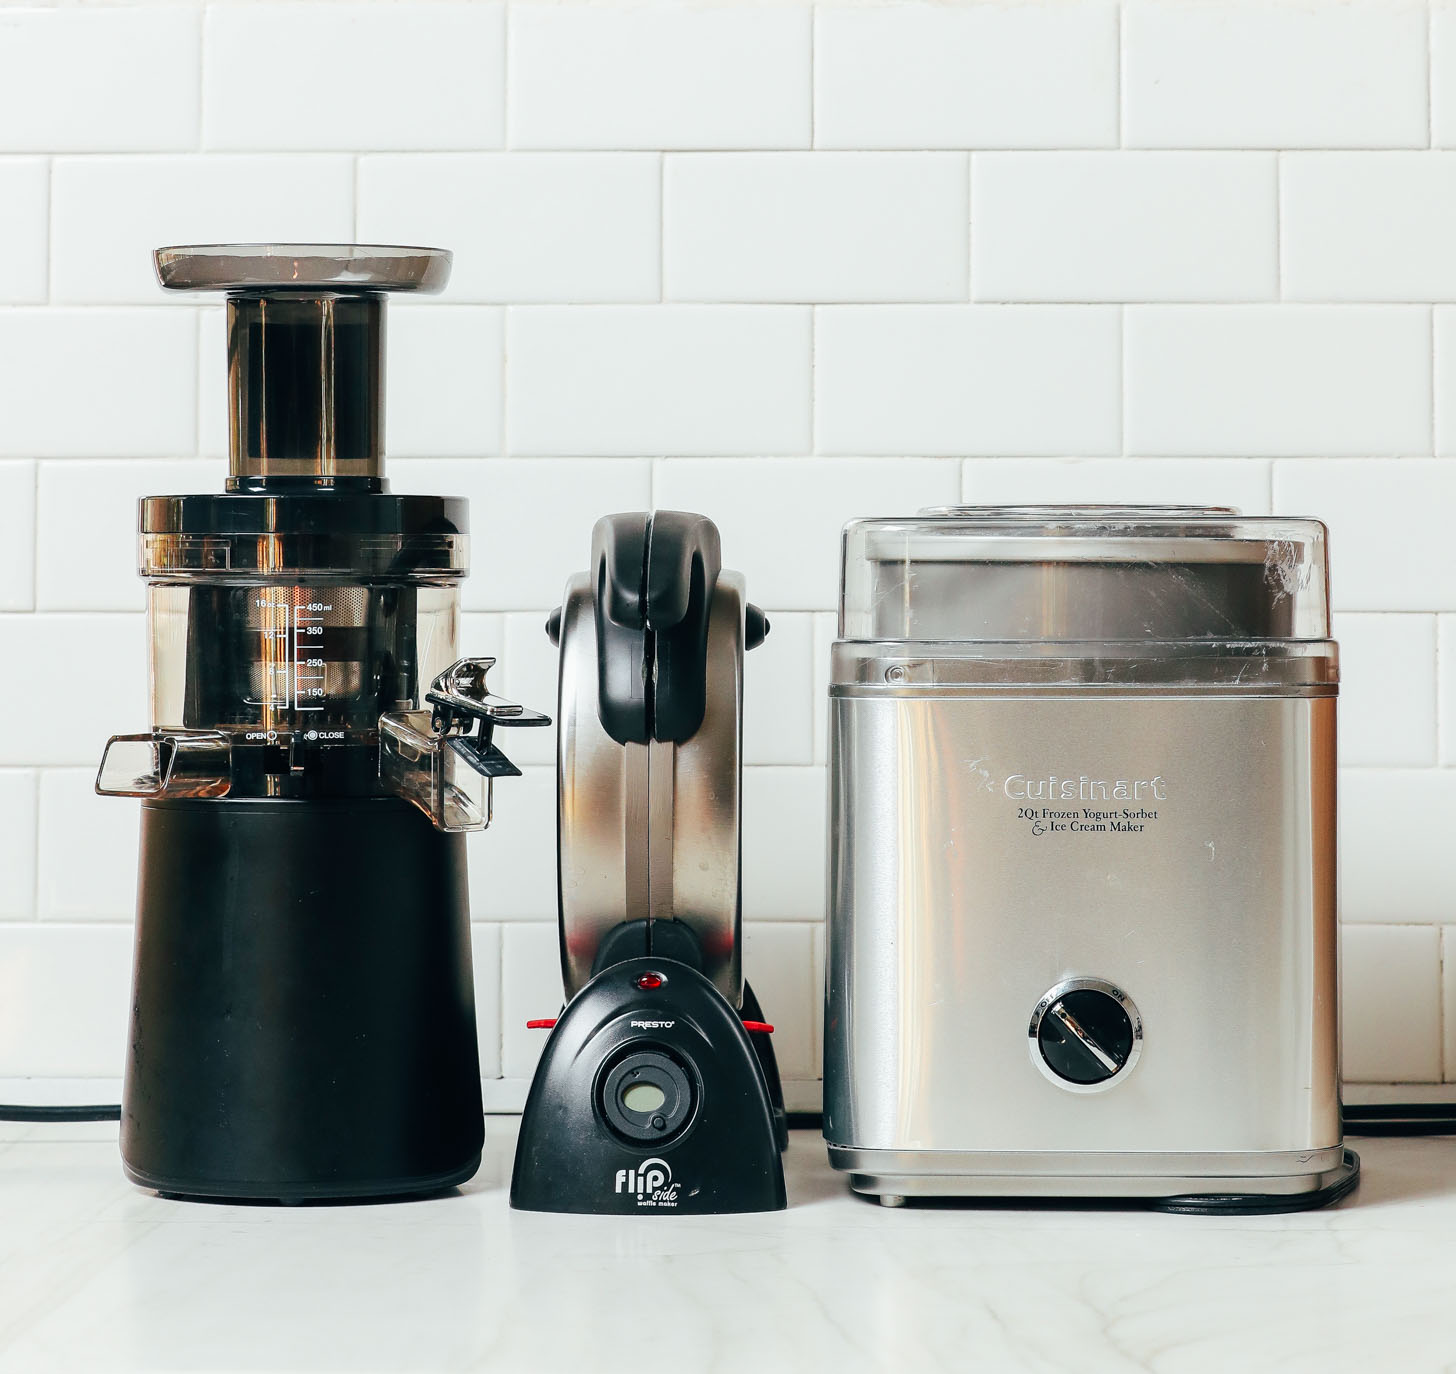 A juicer, waffle maker, and ice cream maker as some of the kitchen appliances we recommend in our guide on How to Stock a Pantry